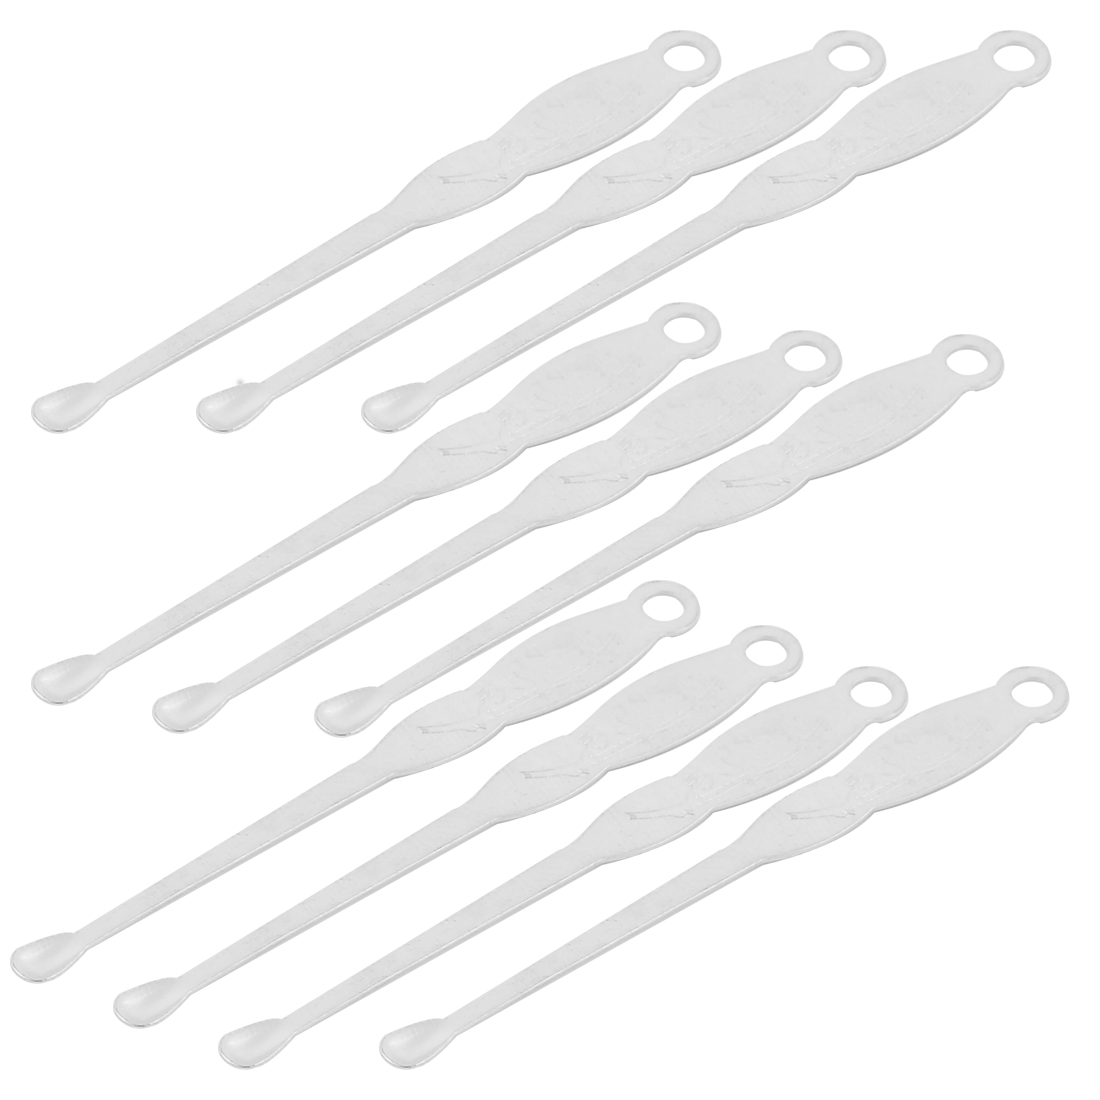 Metal Flower Carven Earpick Ear Curette Earwax Removal Cleaner Silver Tone 10 Pcs